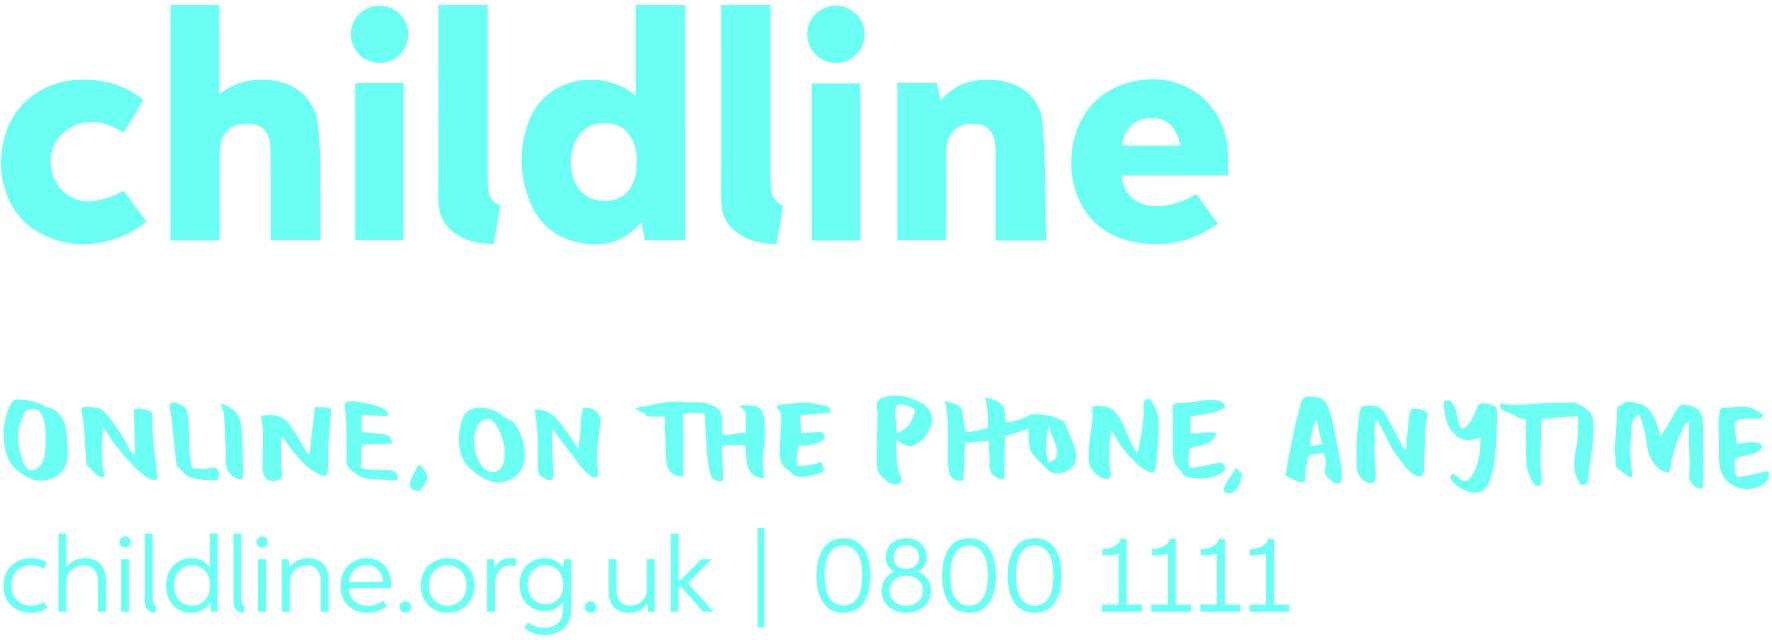 Childline takes thousands of calls from children